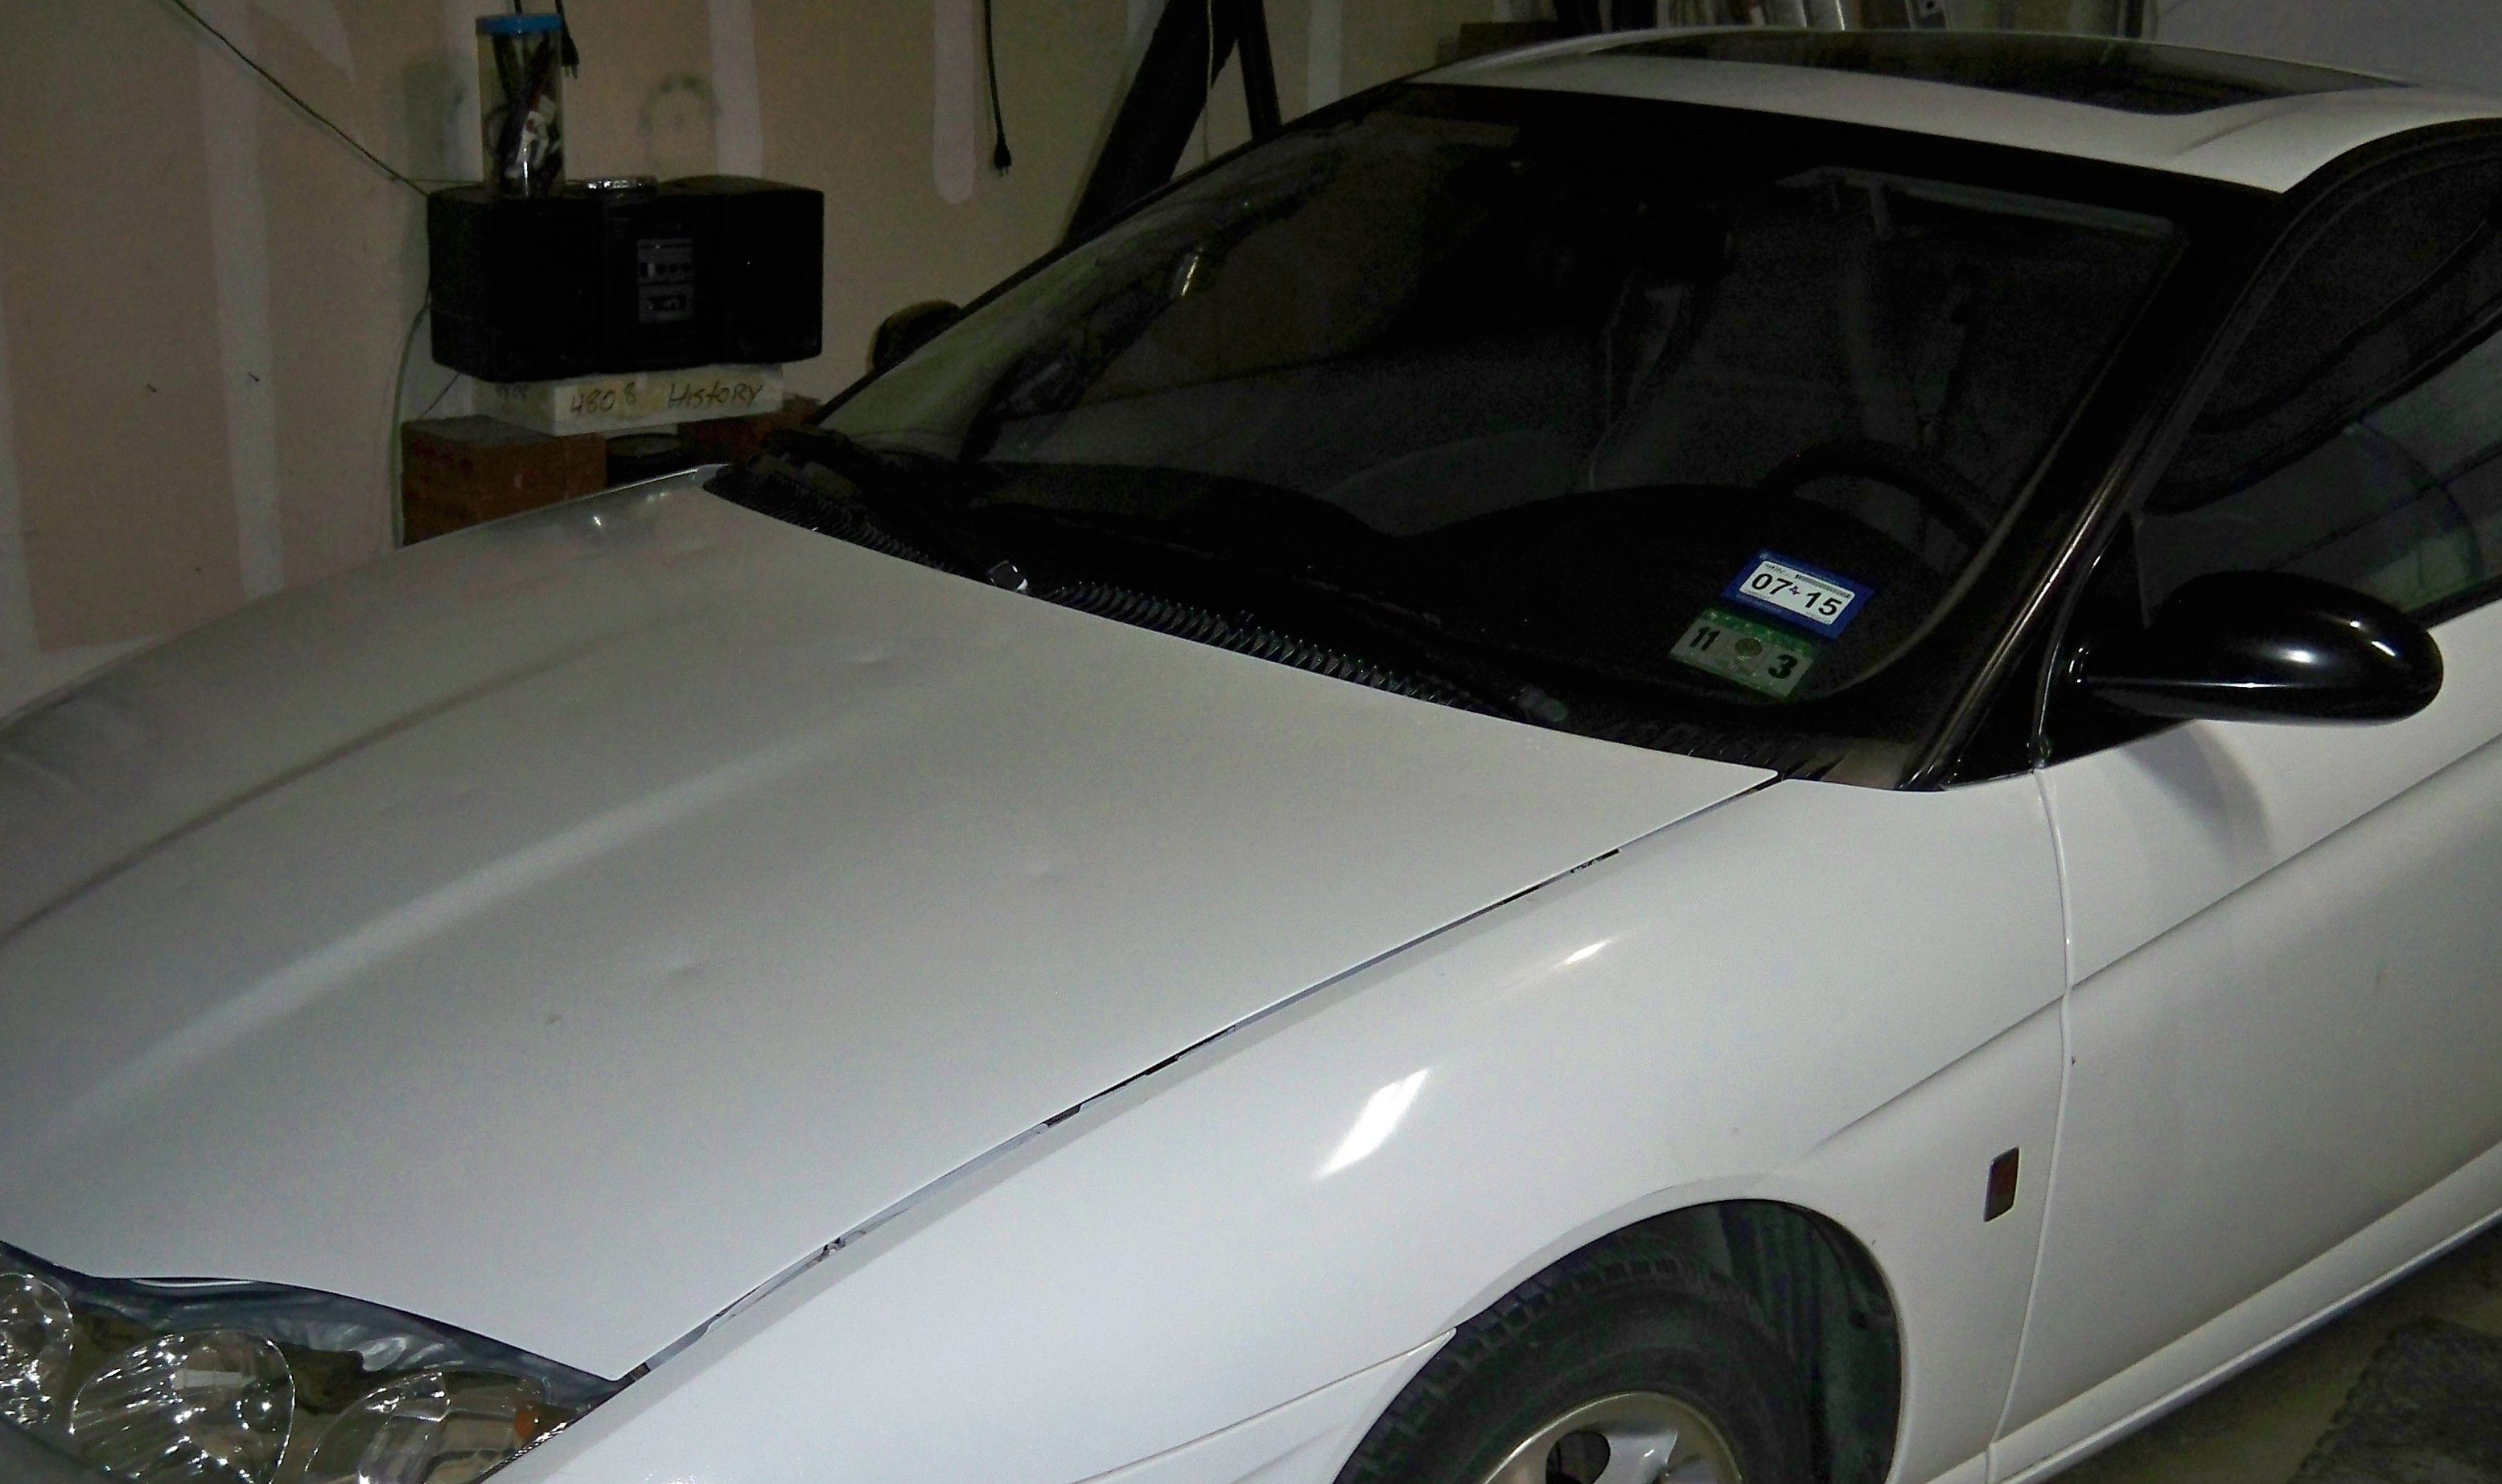 Saturn windshield replacement prices local auto glass quotes 2001 saturn sc1 windshield vanachro Image collections